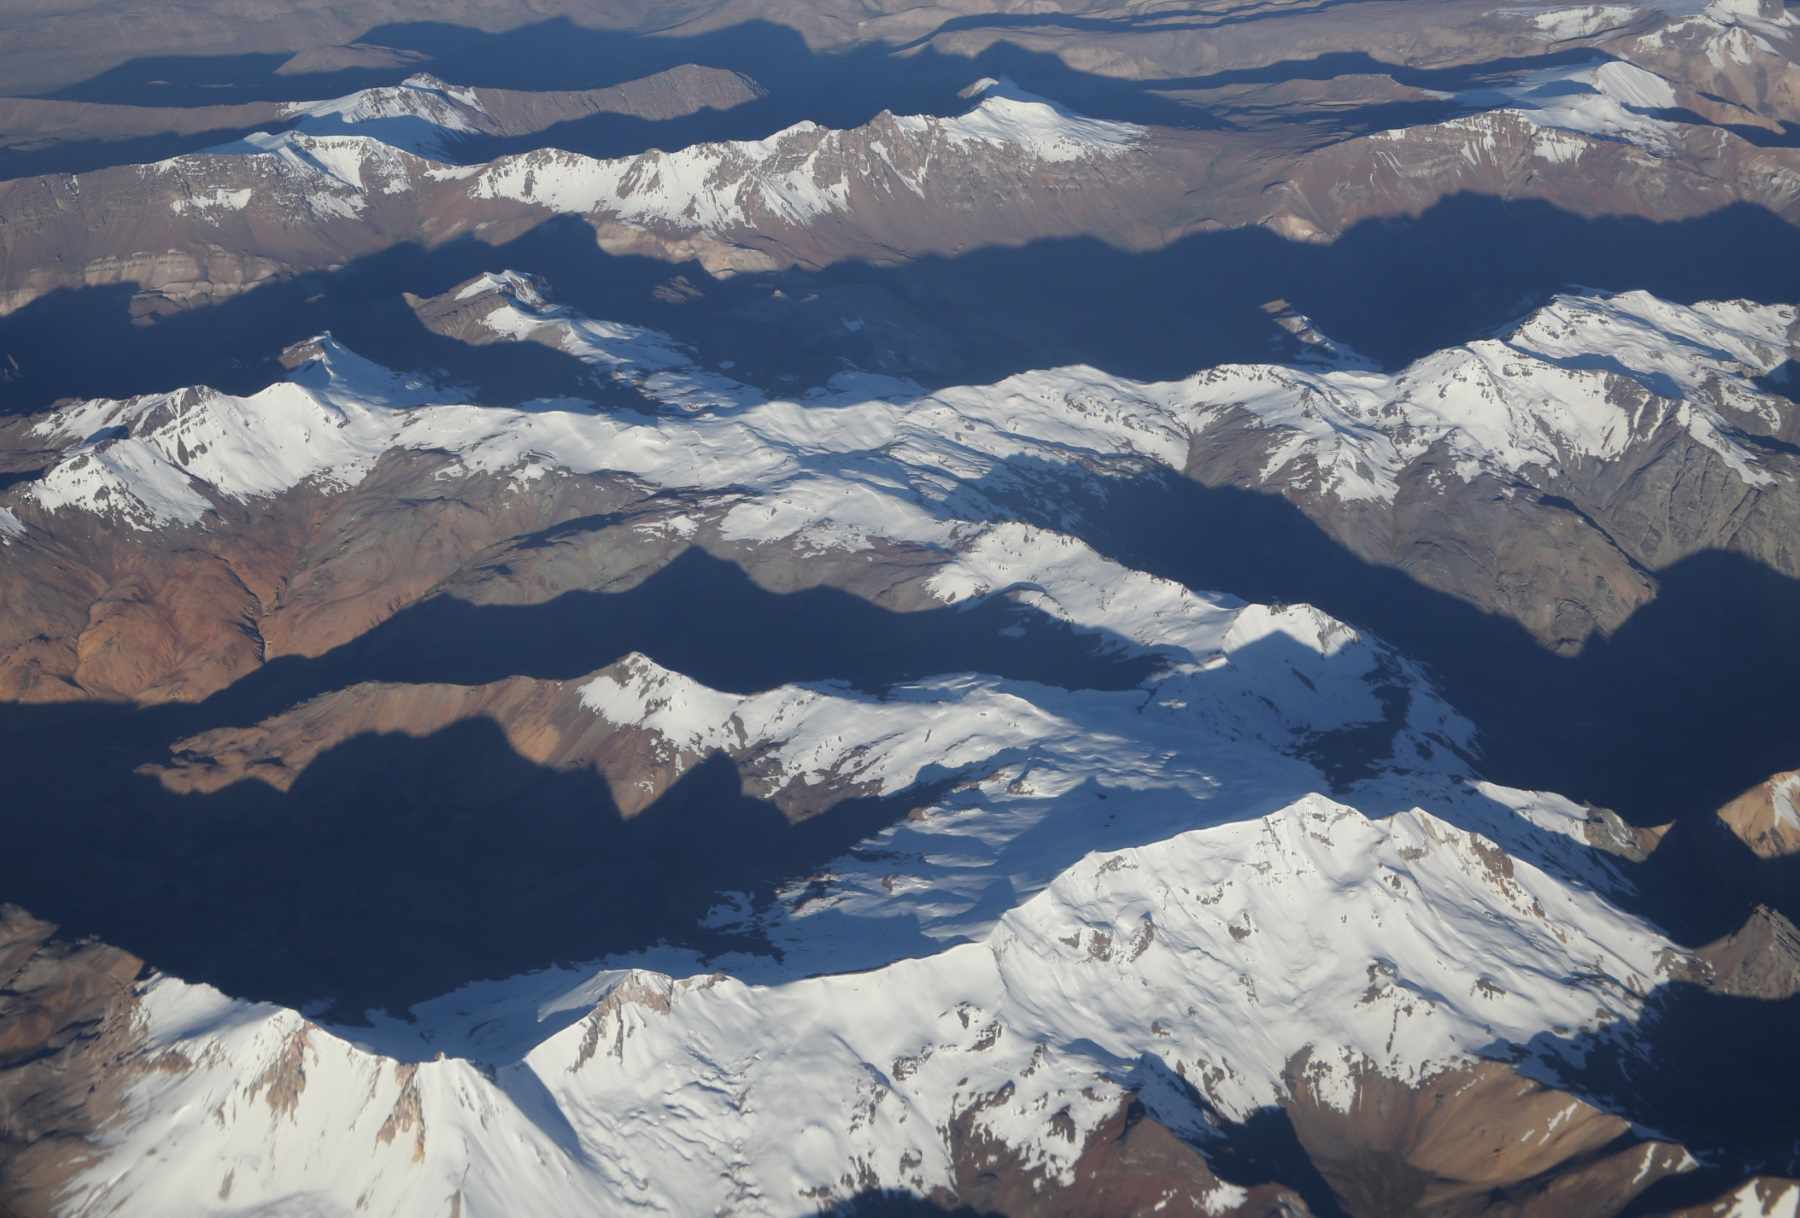 Aerial photo of mountains in Peru.